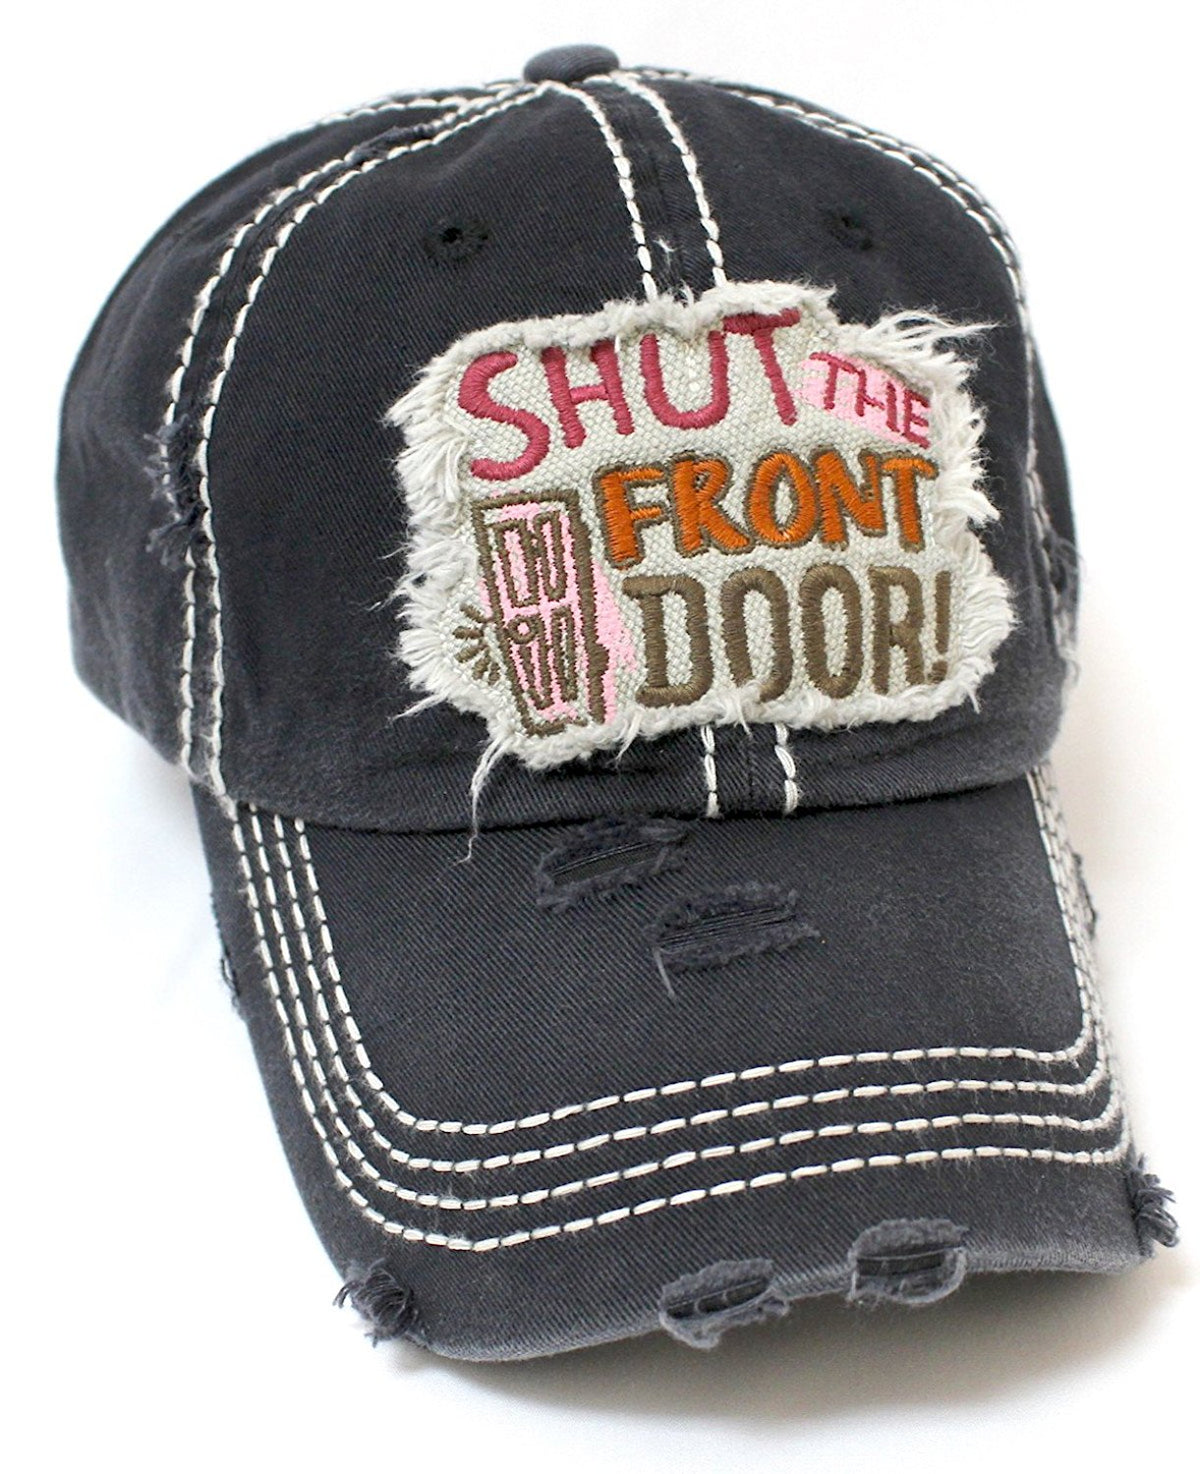 CAPS 'N VINTAGE Women's Black Shut The Front Door! Patch Embroidery Humor Baseball Hat - Caps 'N Vintage